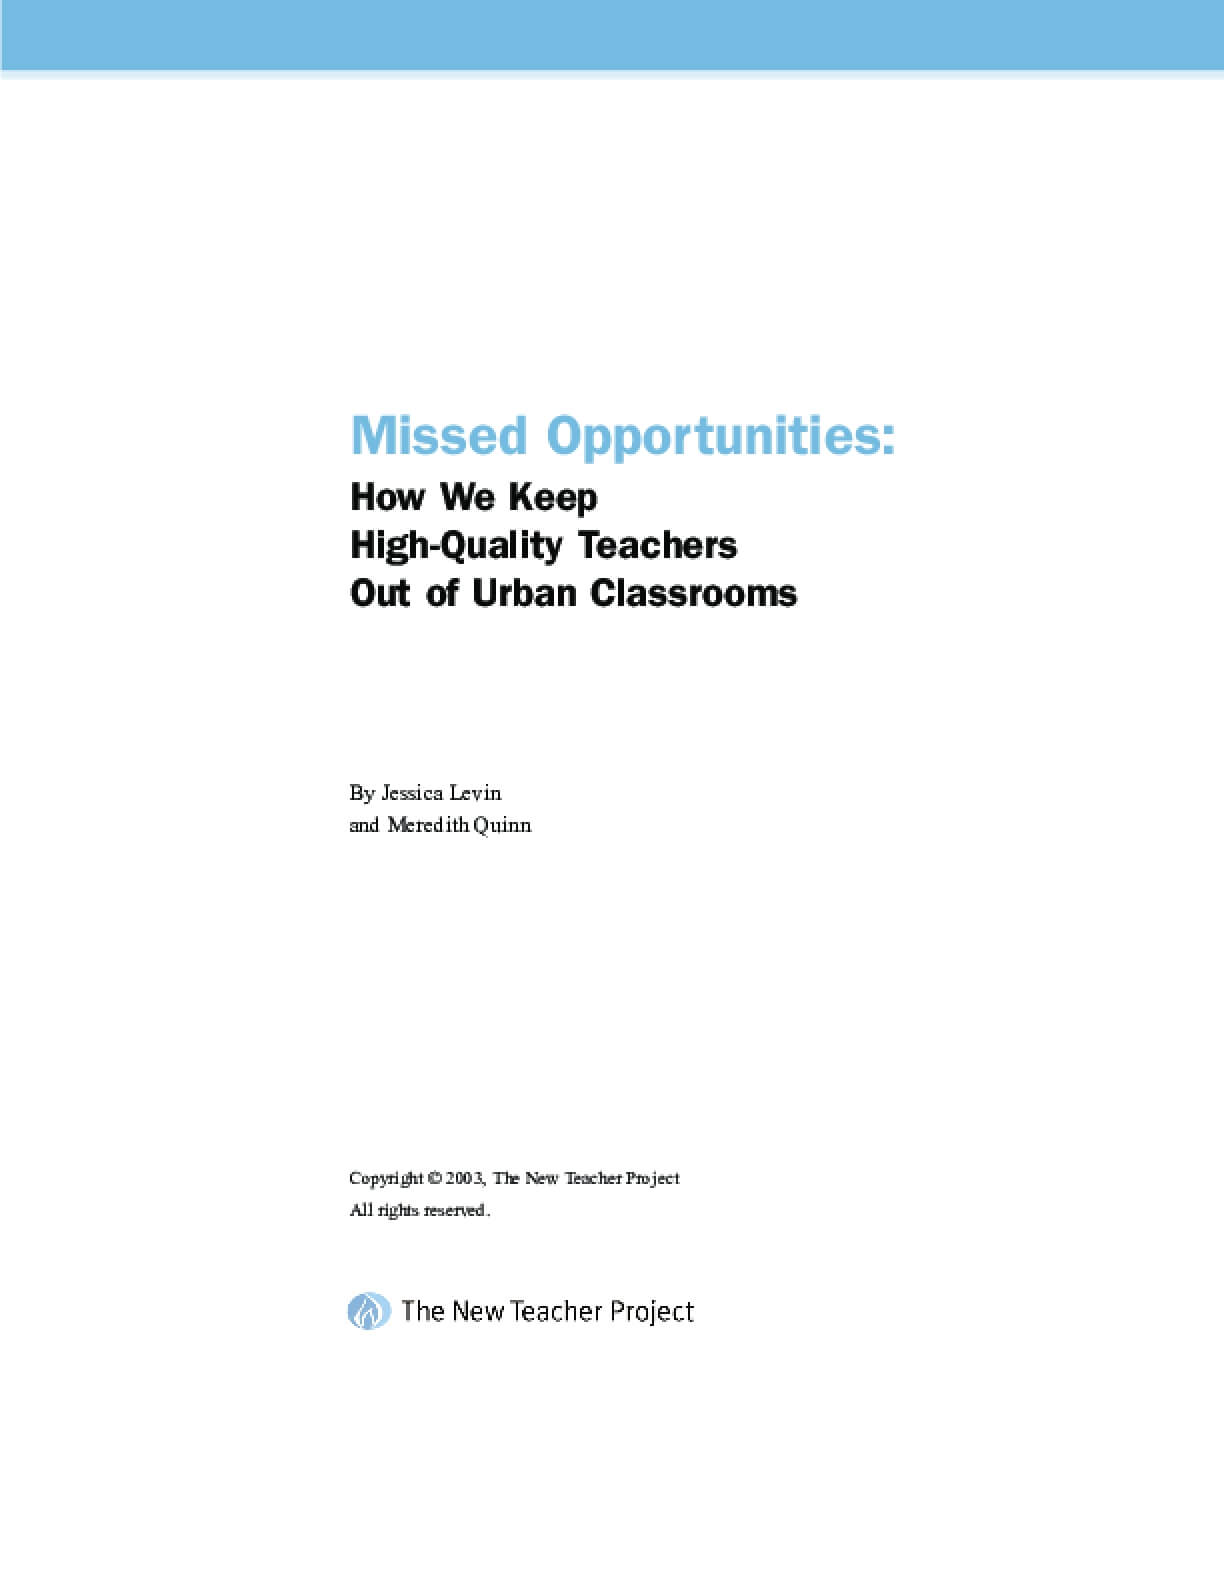 Missed Opportunities: How We Keep High-Quality Teachers Out of Urban Classrooms